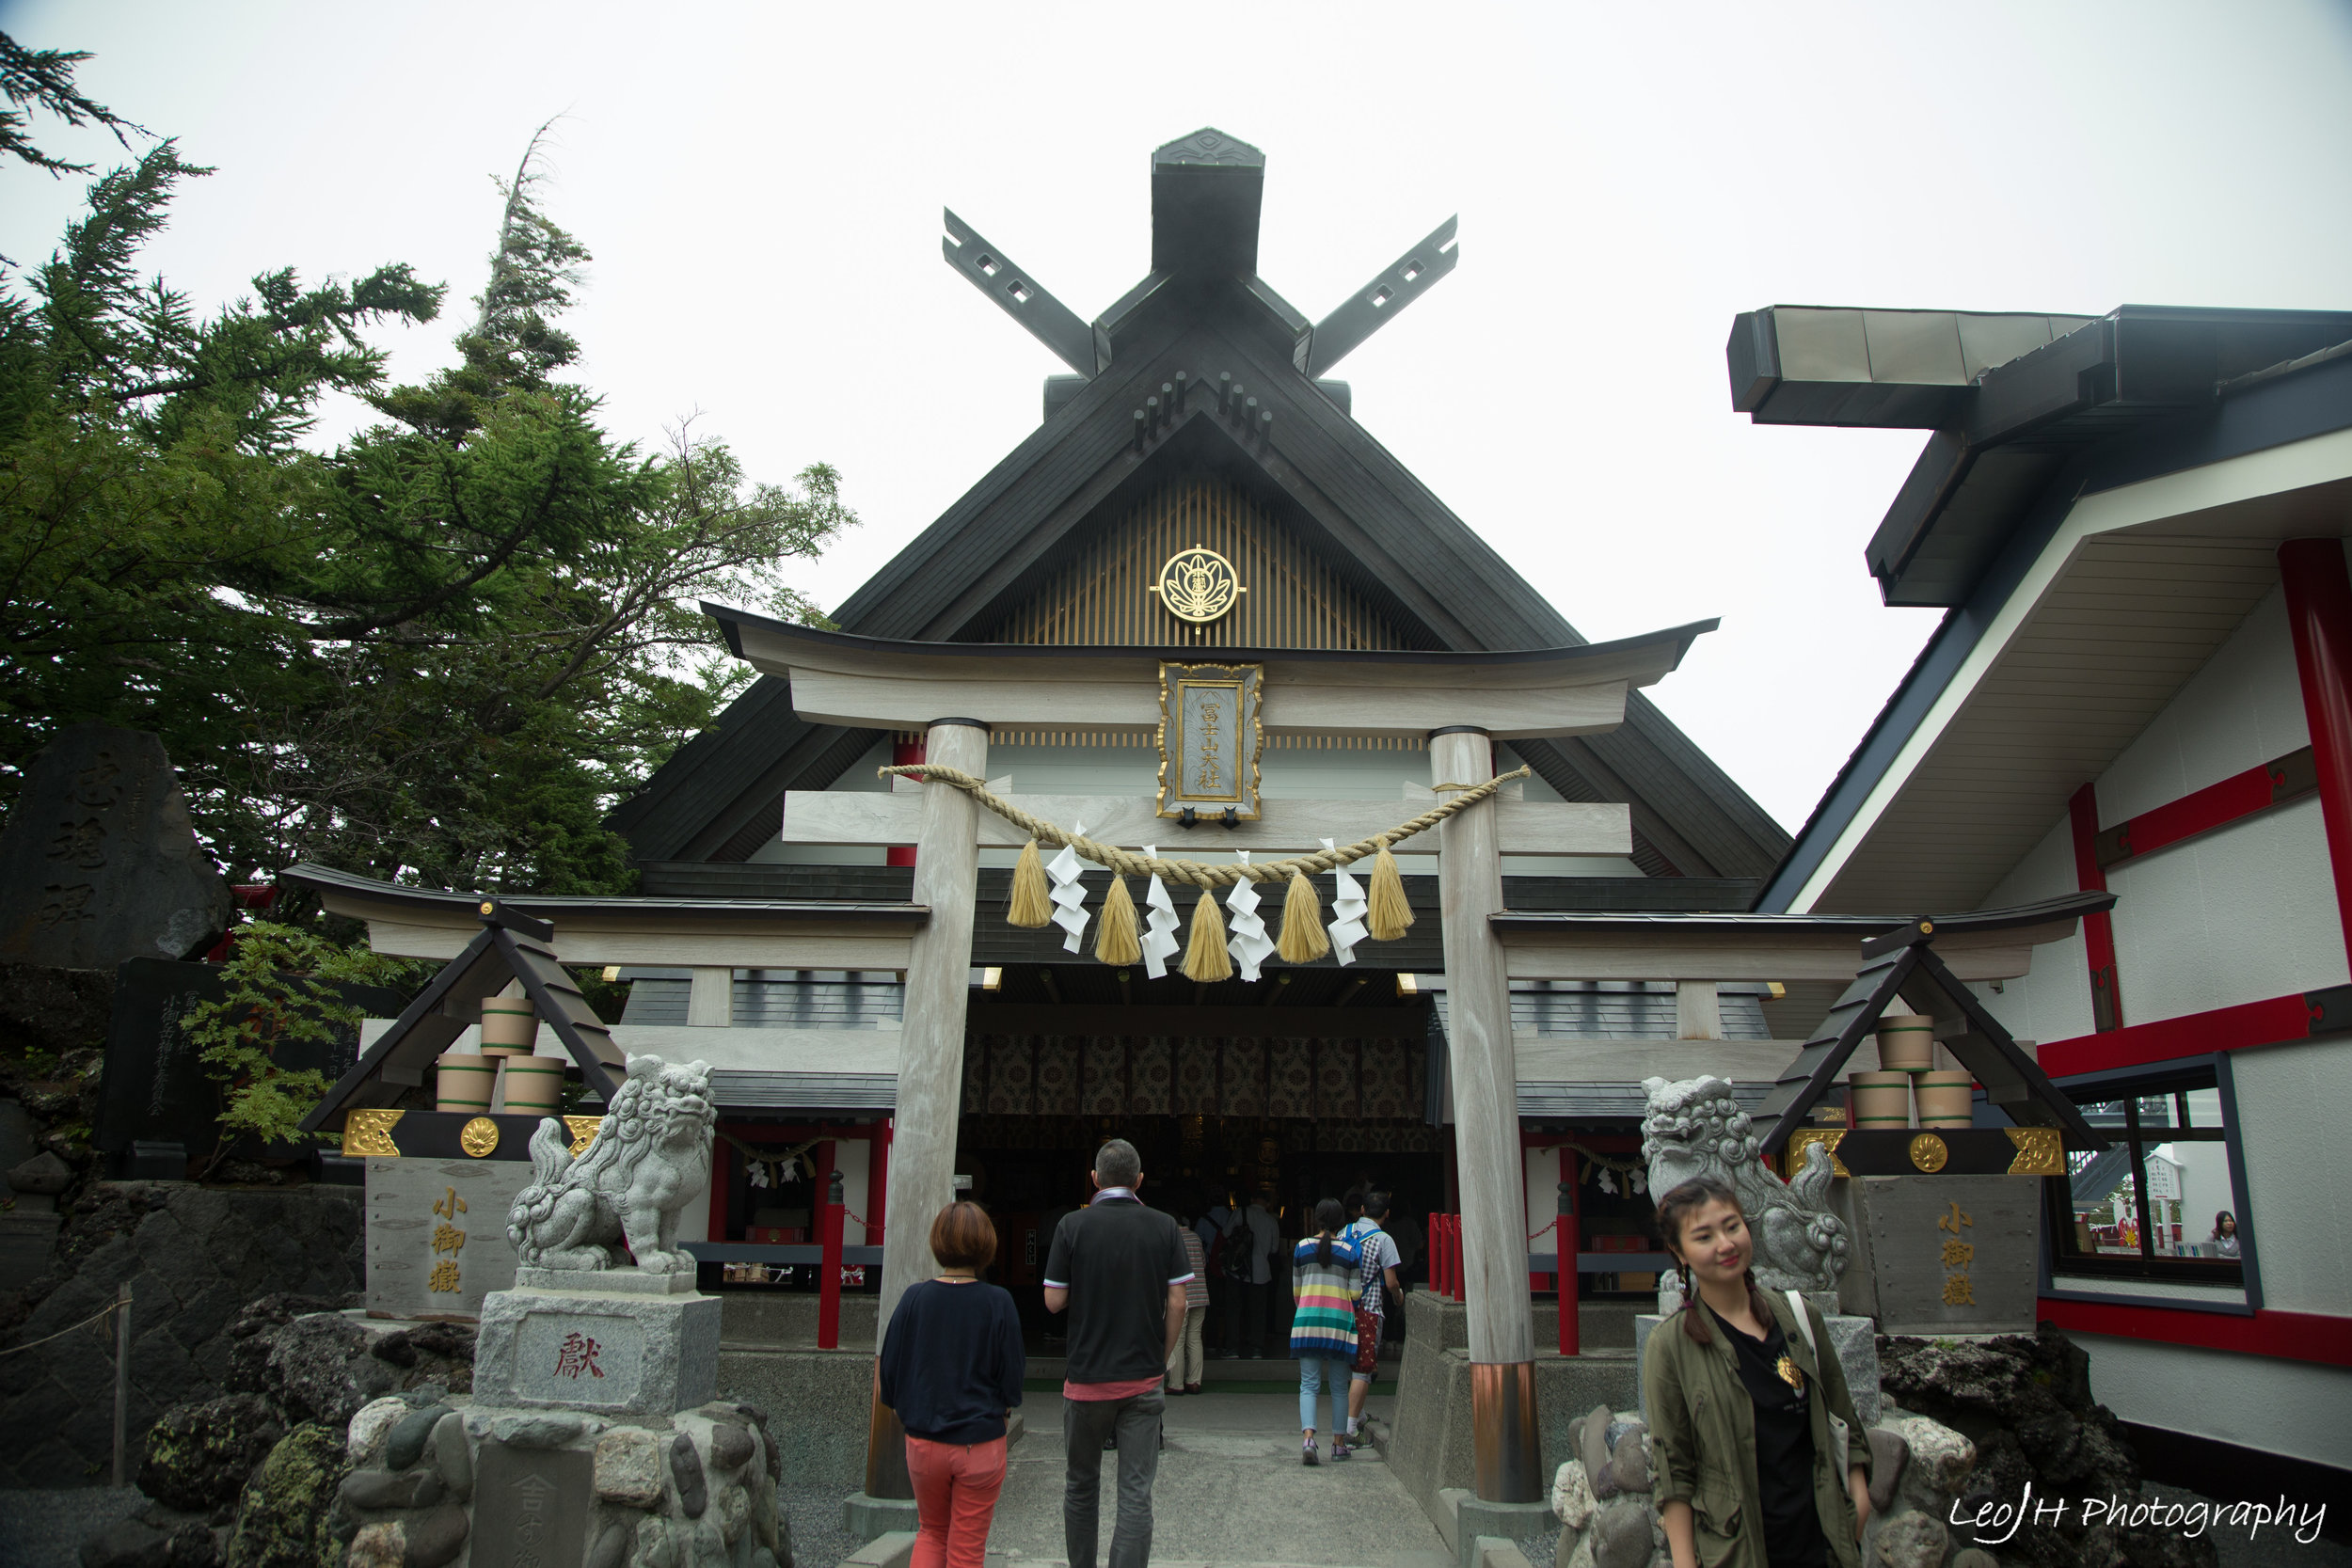 Komitake Shrine at the 5th station